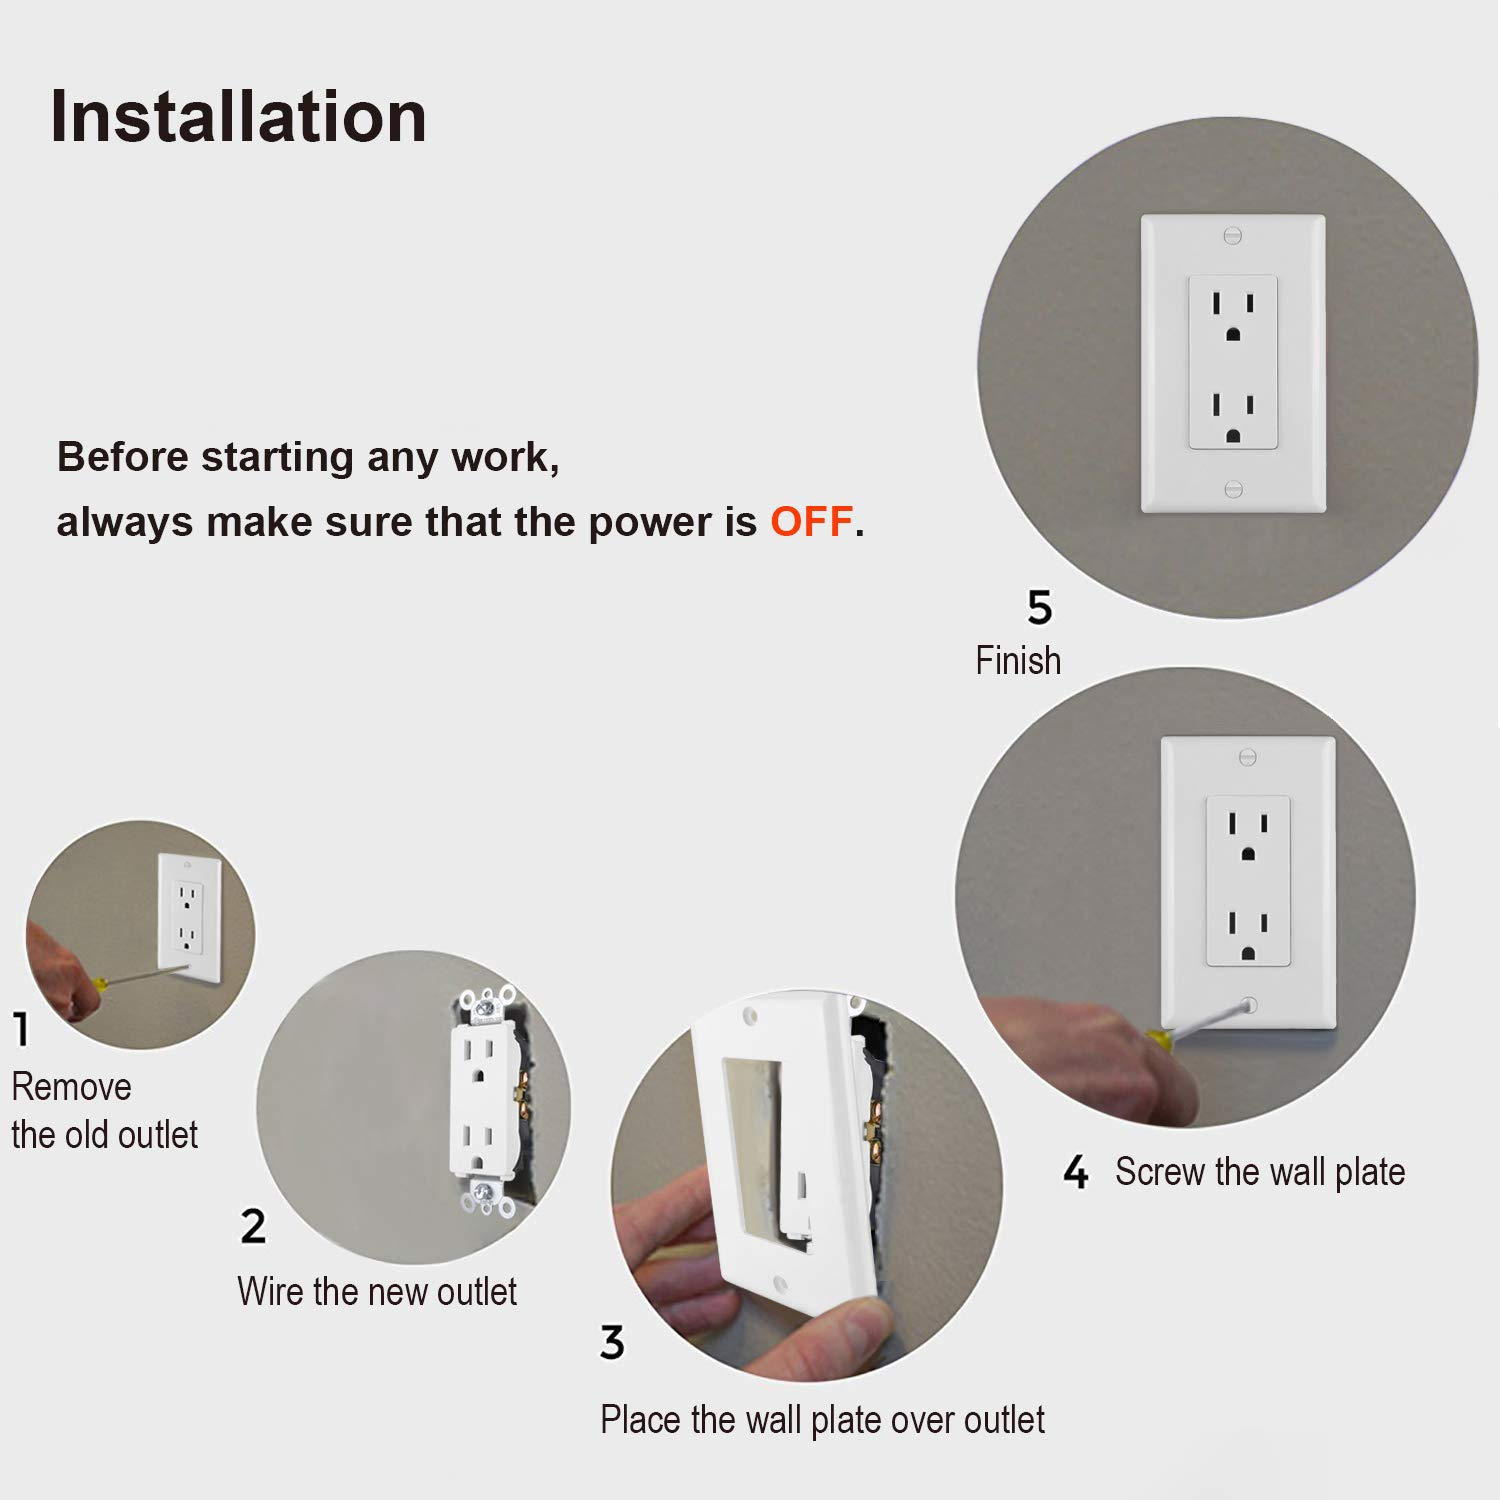 BESTTEN Wholesale, 50 Pack of 15A Standard Decor Outlets with Wall Plates, Decorative Electrical Receptacle with Covers, None-Tamper-Resistant, Residential and Commercial Grade, UL Listed, White by BESTTEN (Image #4)